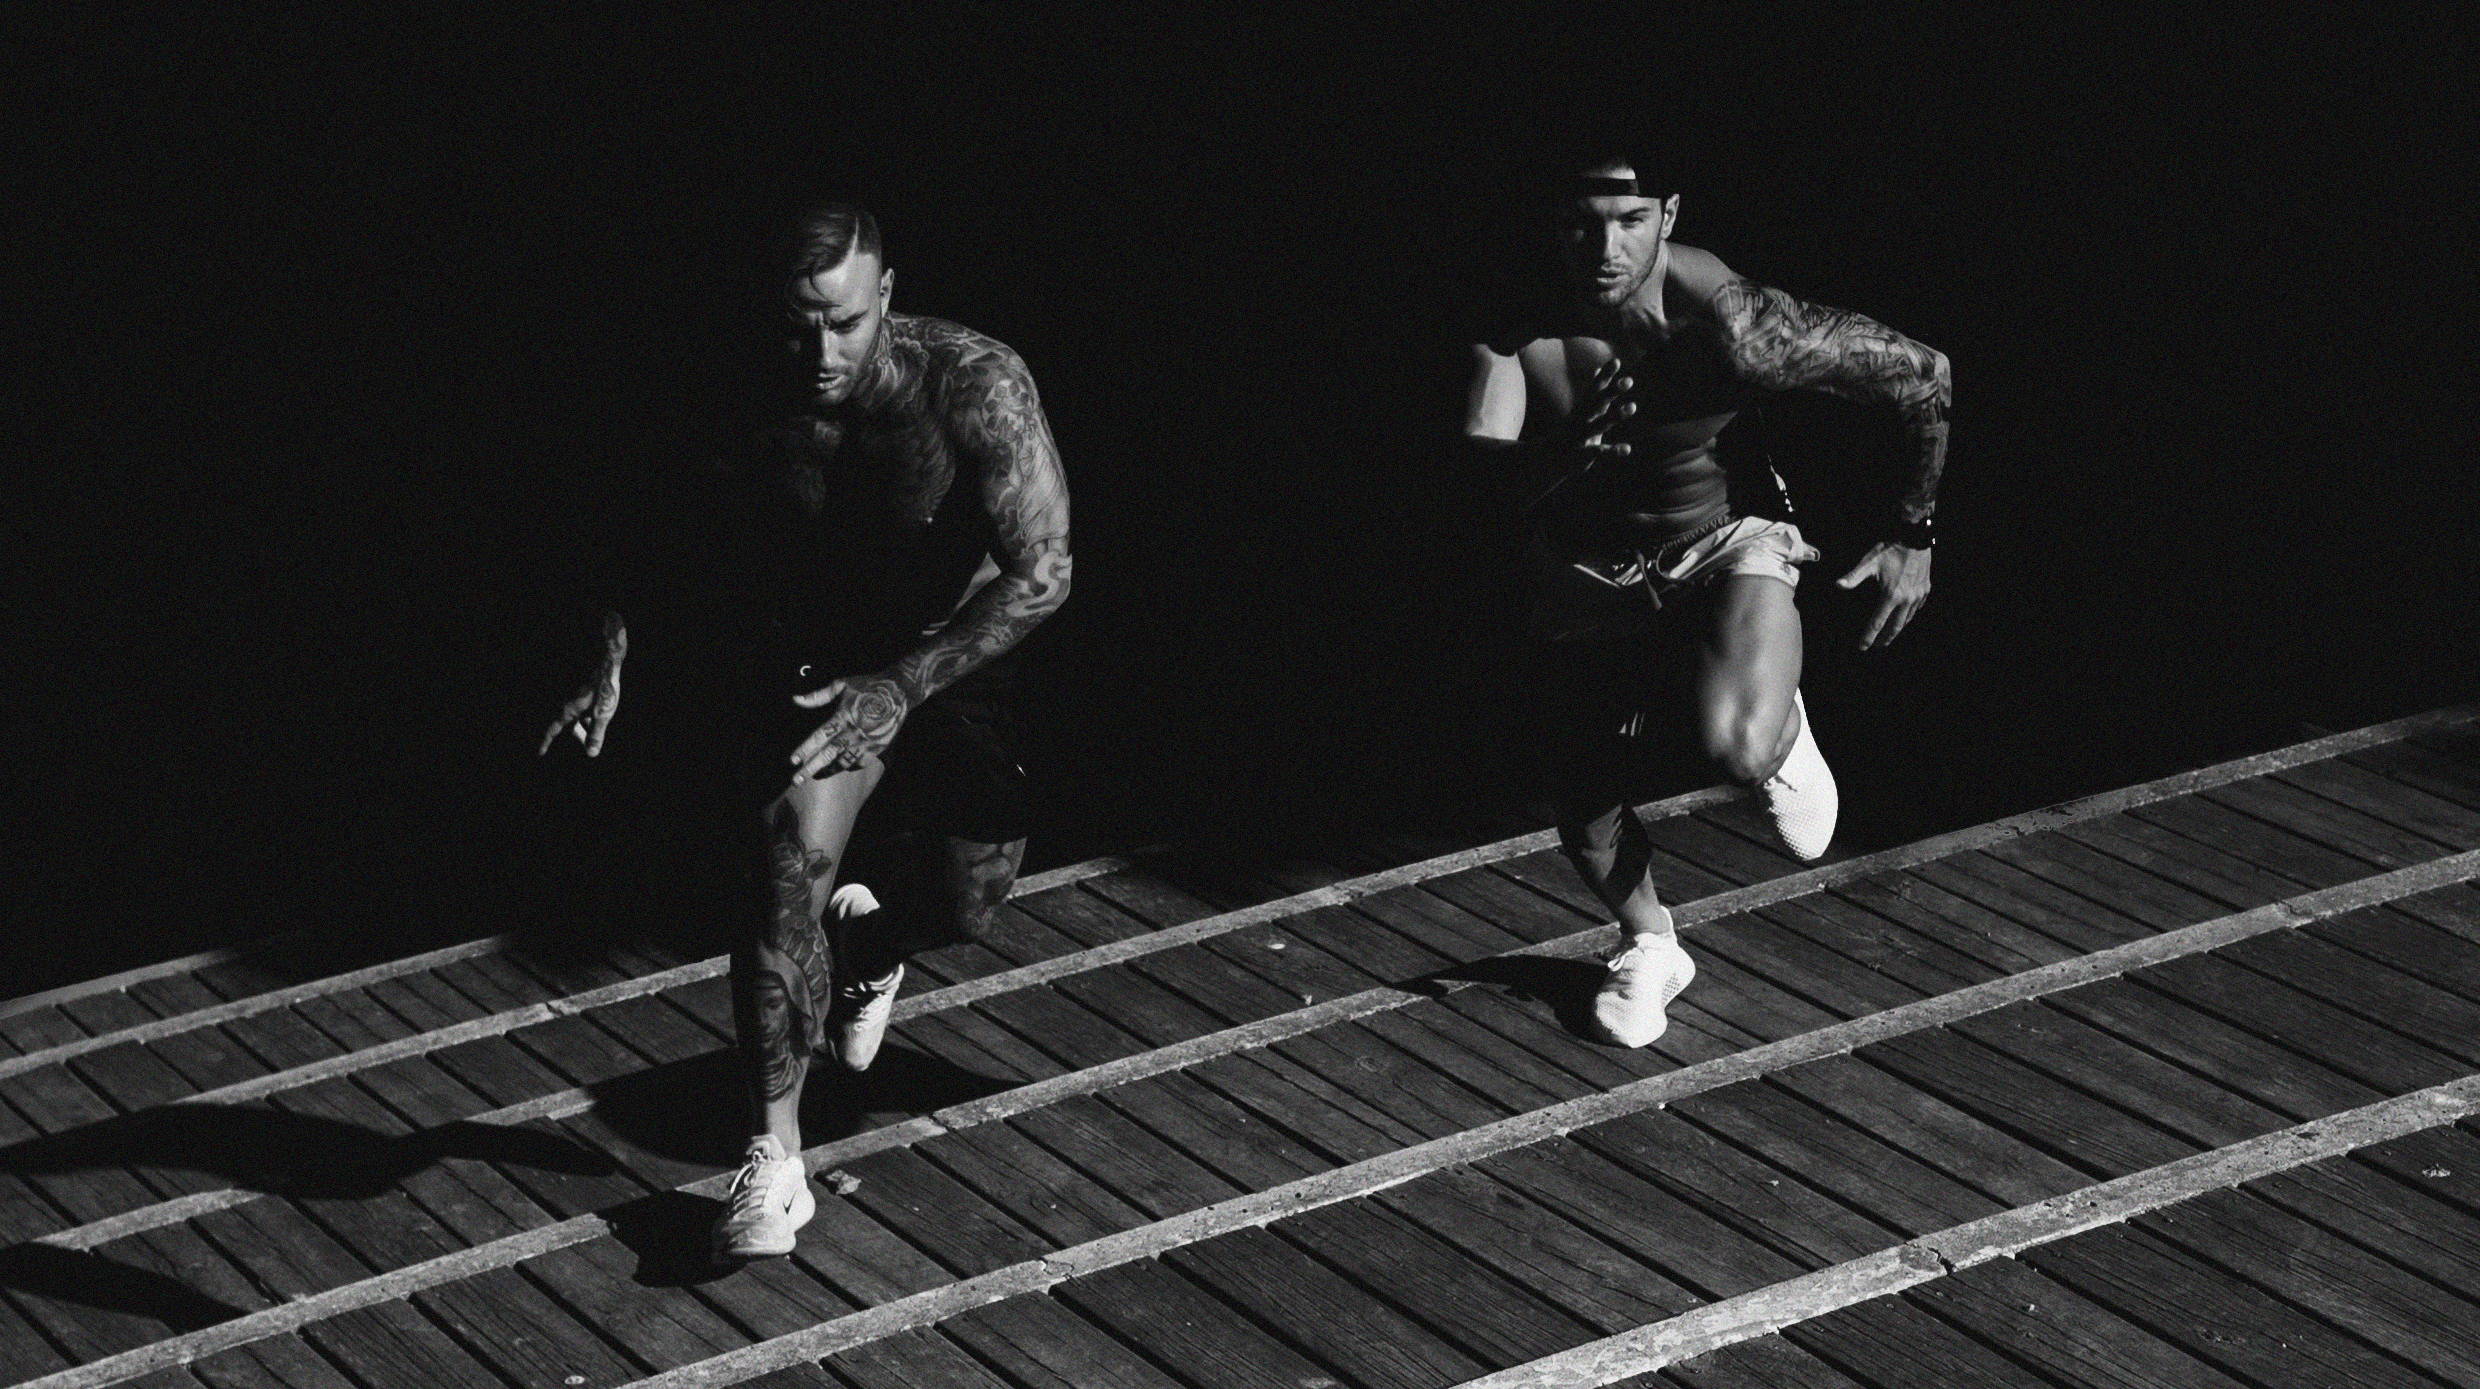 Black and white photo of two men running